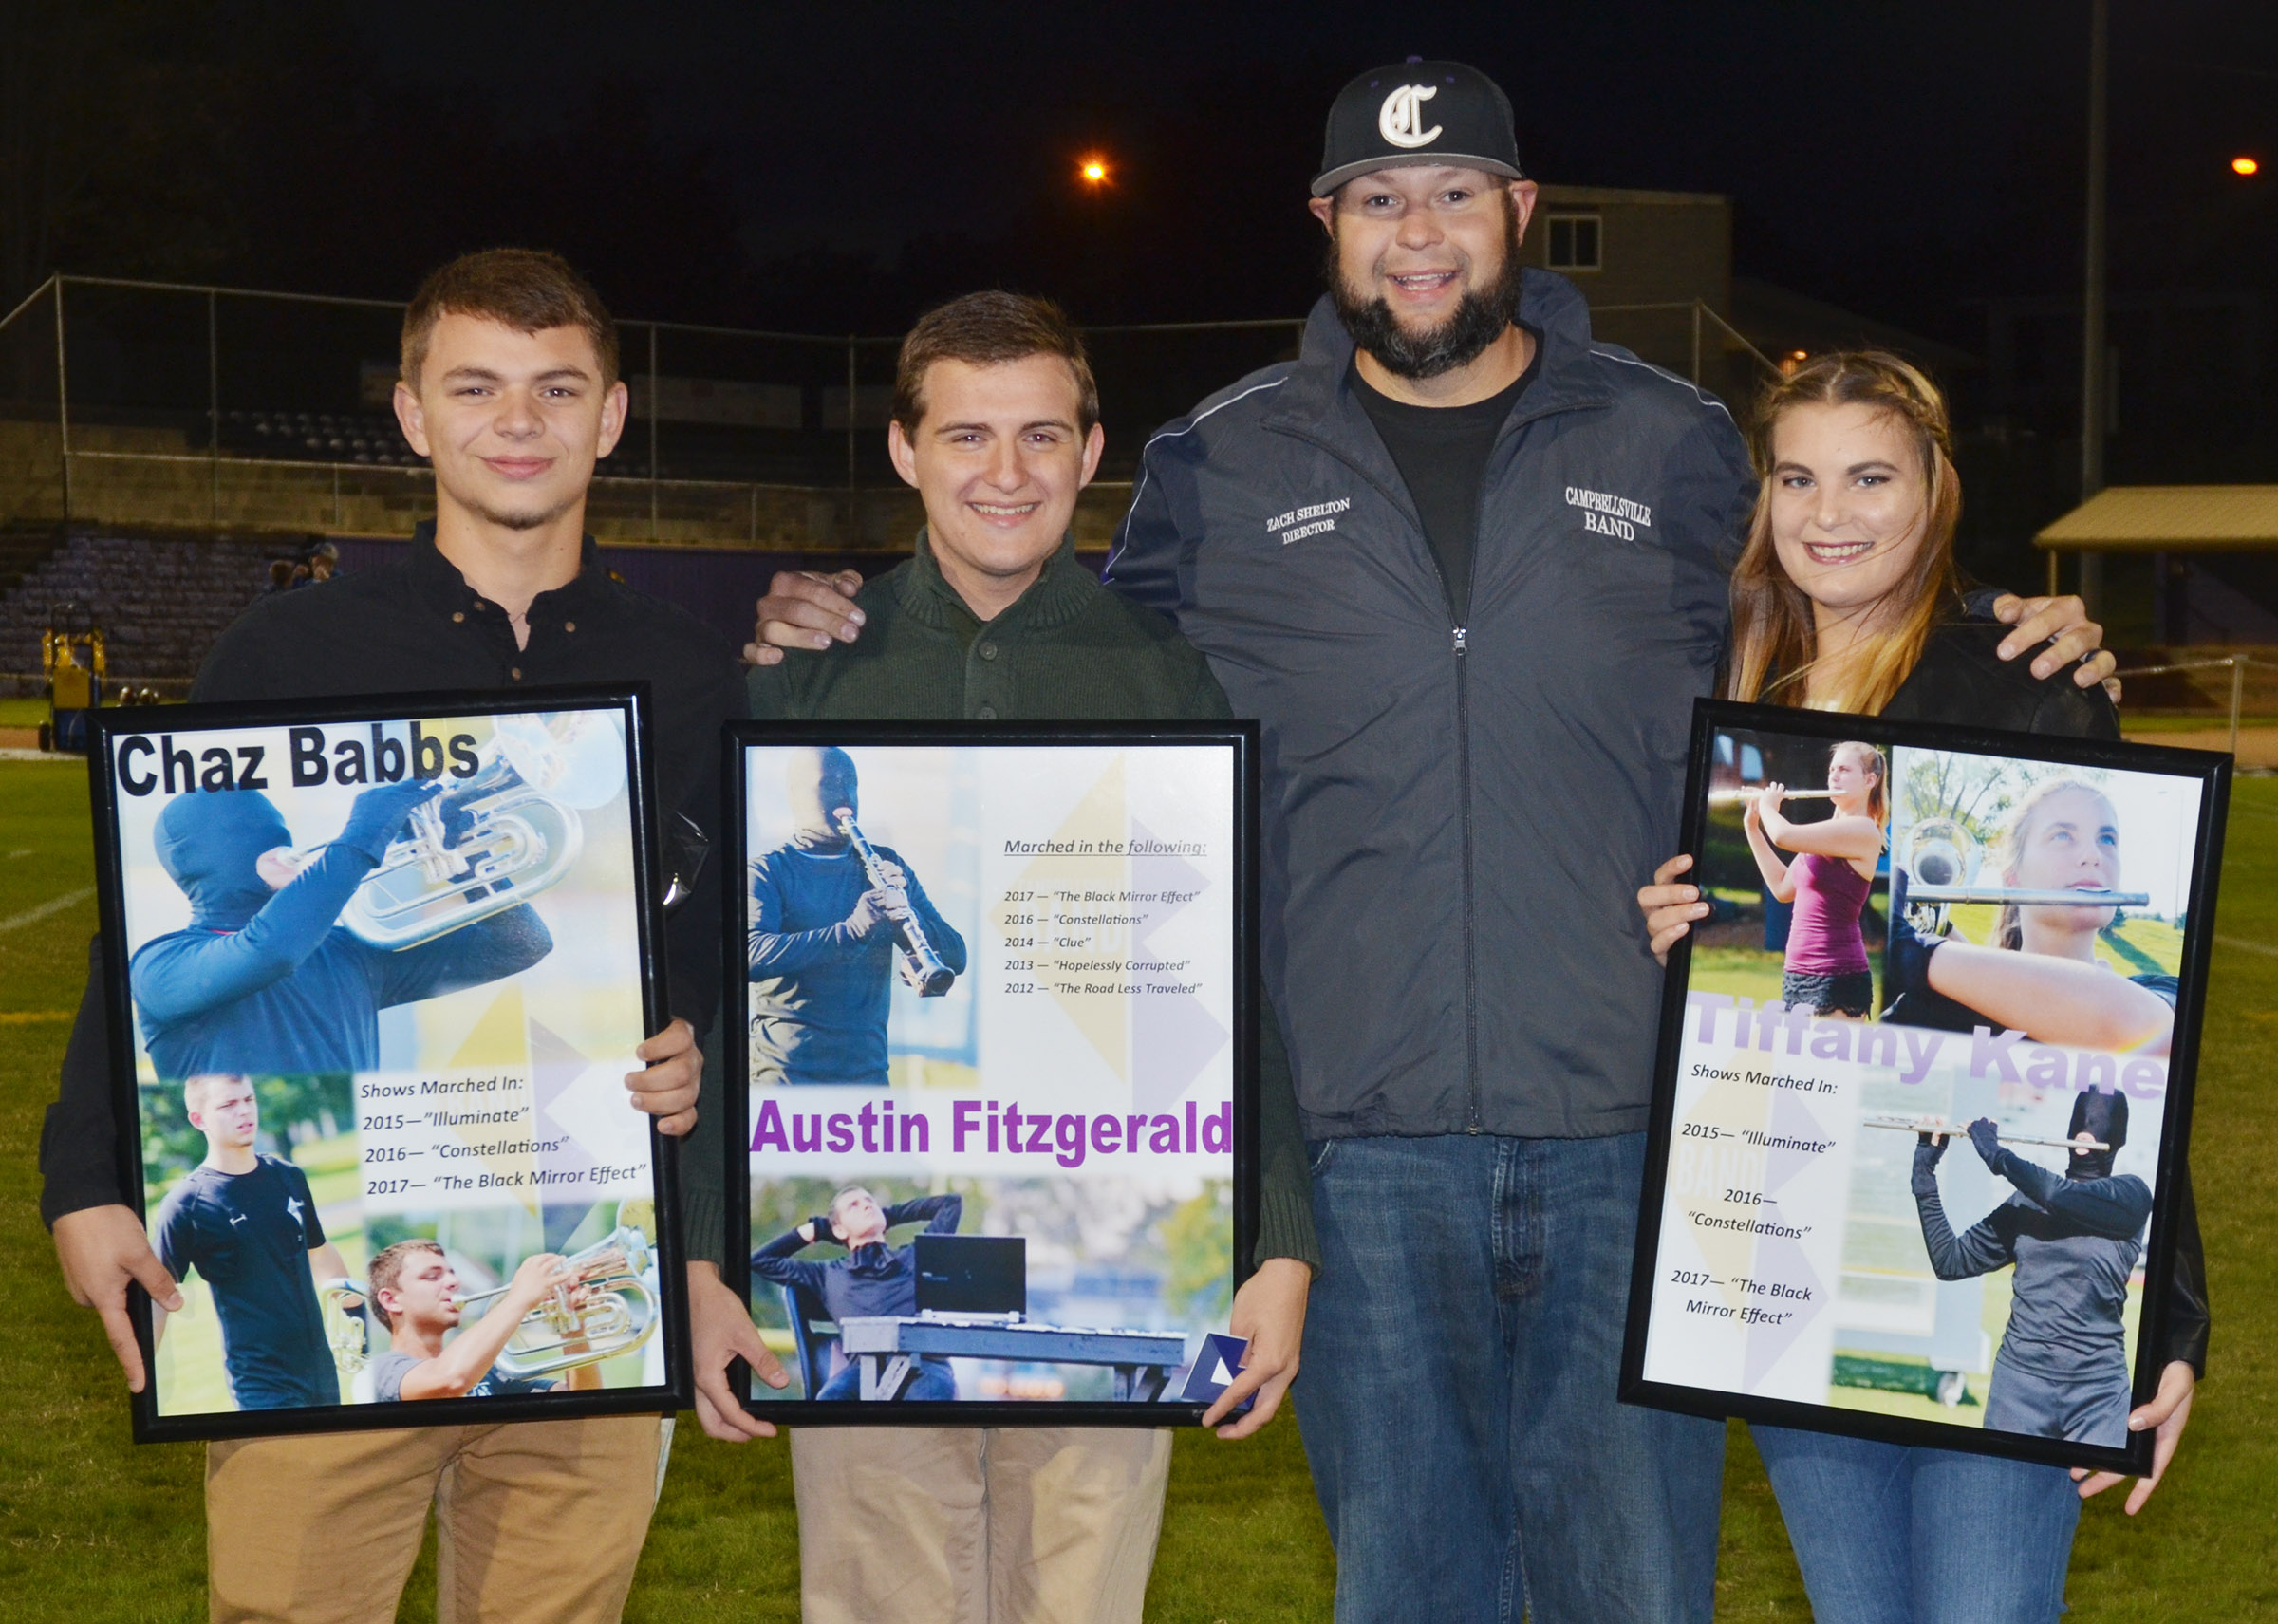 CHS Band Director Zach Shelton honors seniors, from left, Chaz Babbs, Austin Fitzgerald and Tiffany Kane. Darius Wright is absent from the photo.